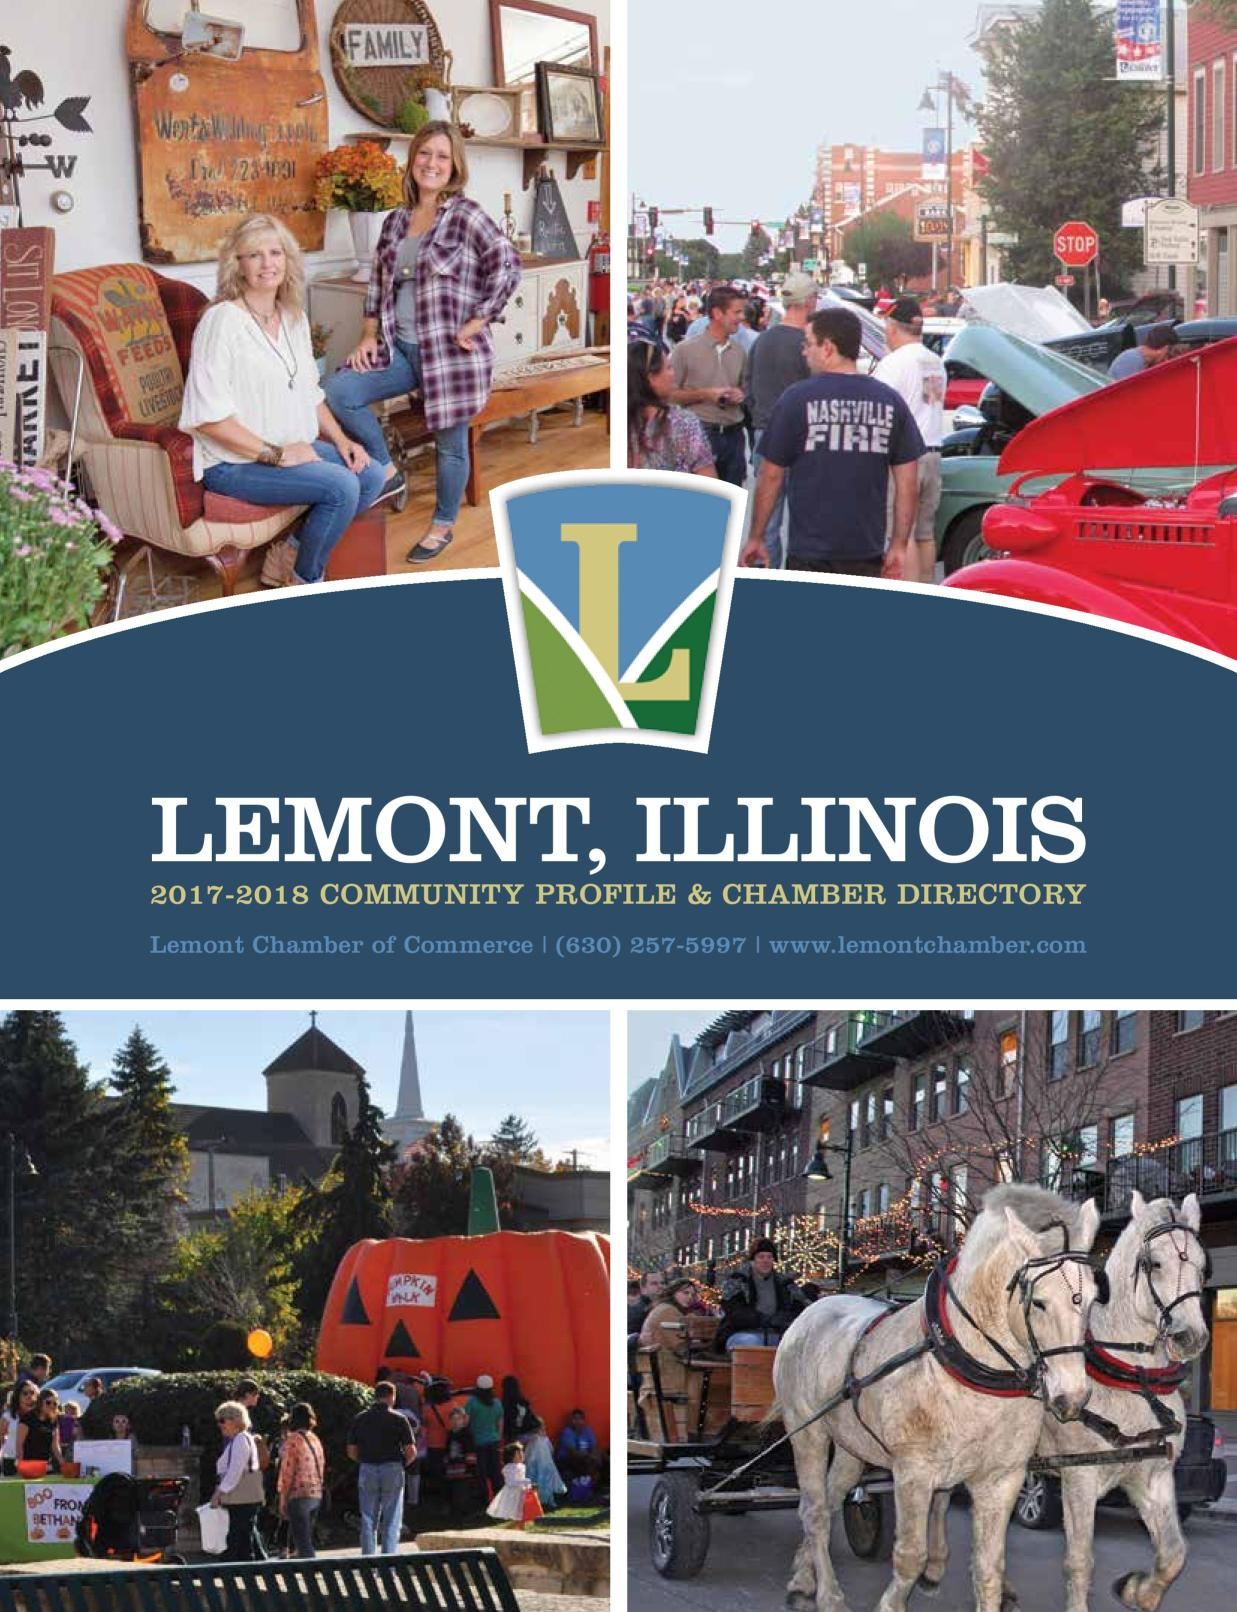 PROOF-Lemont-IL-DIR-2017_cover-FINAL-04-page-001-w1237.jpg